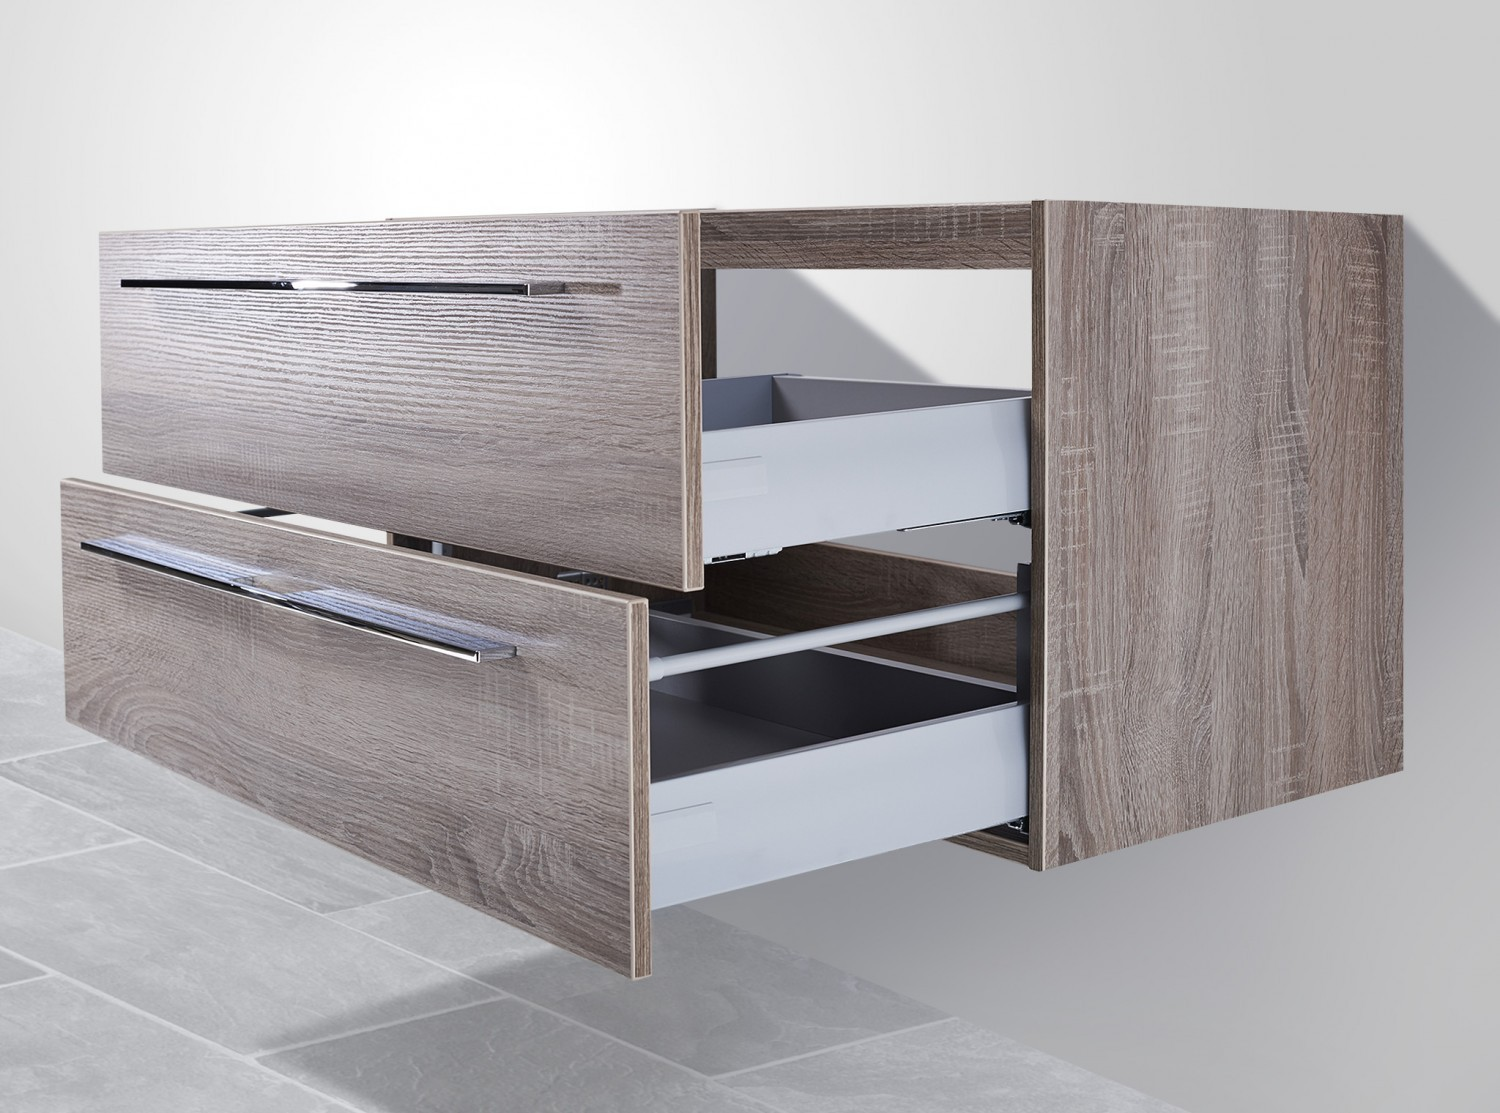 waschtisch unterschrank zu villeroy boch venticello 100 cm waschbeckenunterschrank. Black Bedroom Furniture Sets. Home Design Ideas